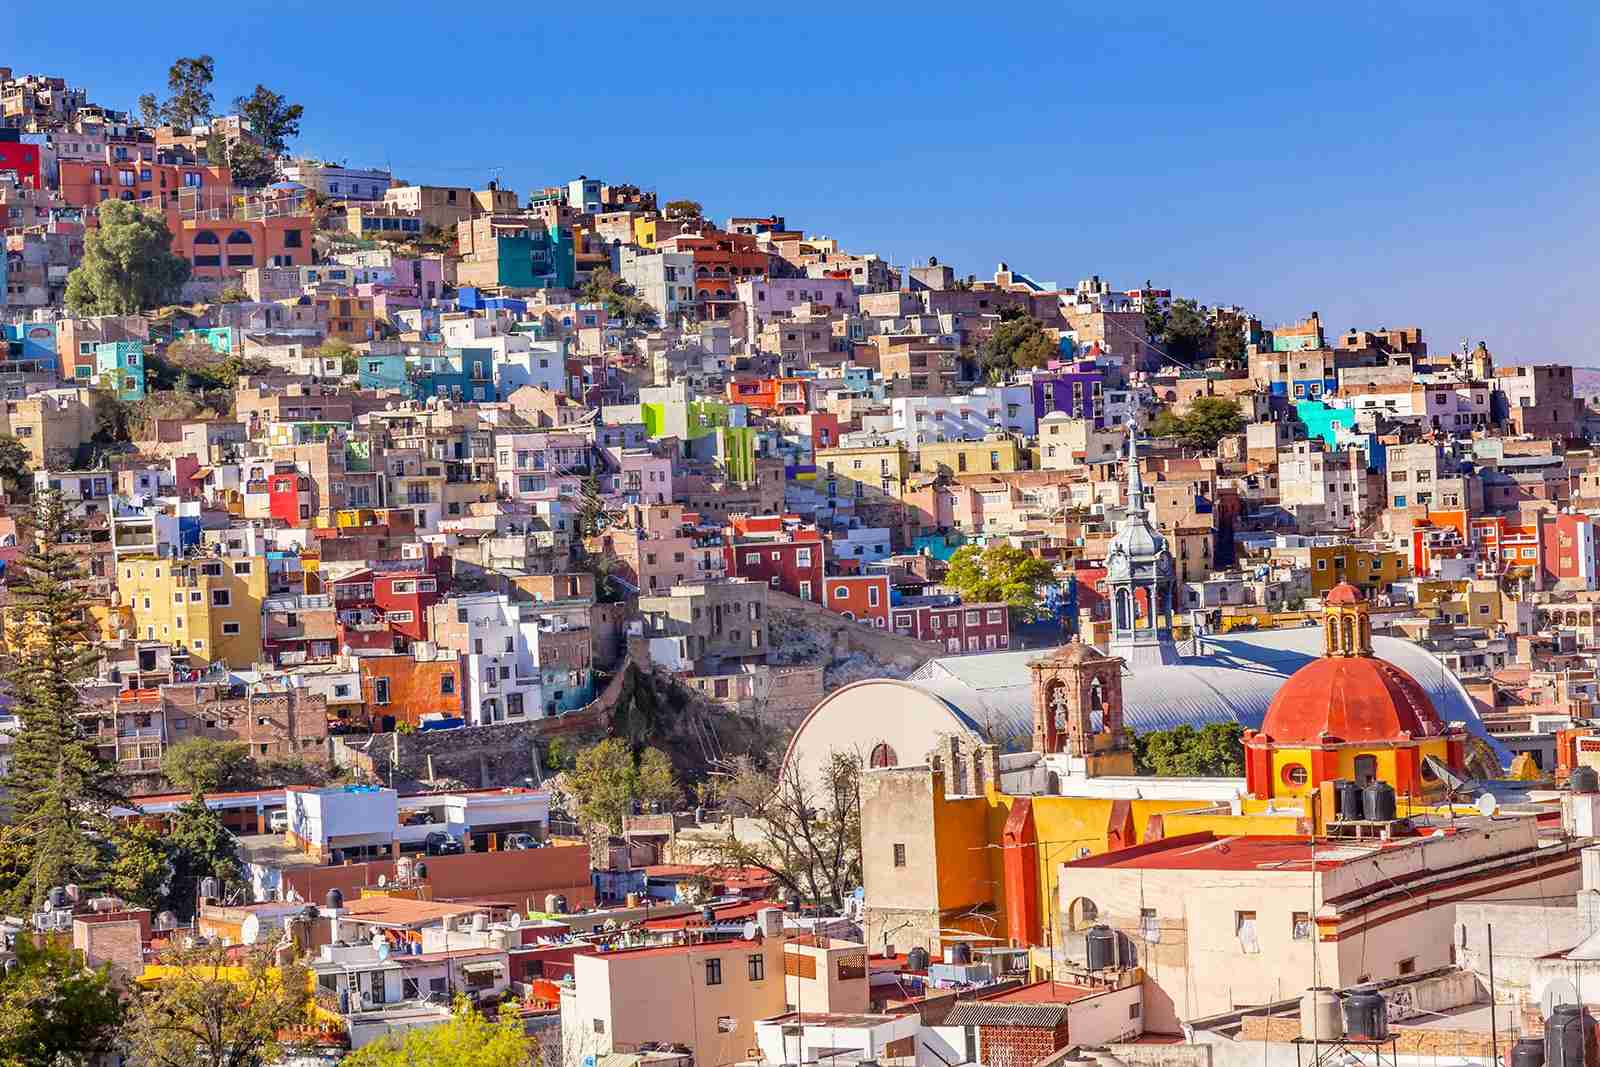 Colored Houses in the Iglesia de San Roque Market in Guanajuato, Mexico. (Photo by Shutterstock)